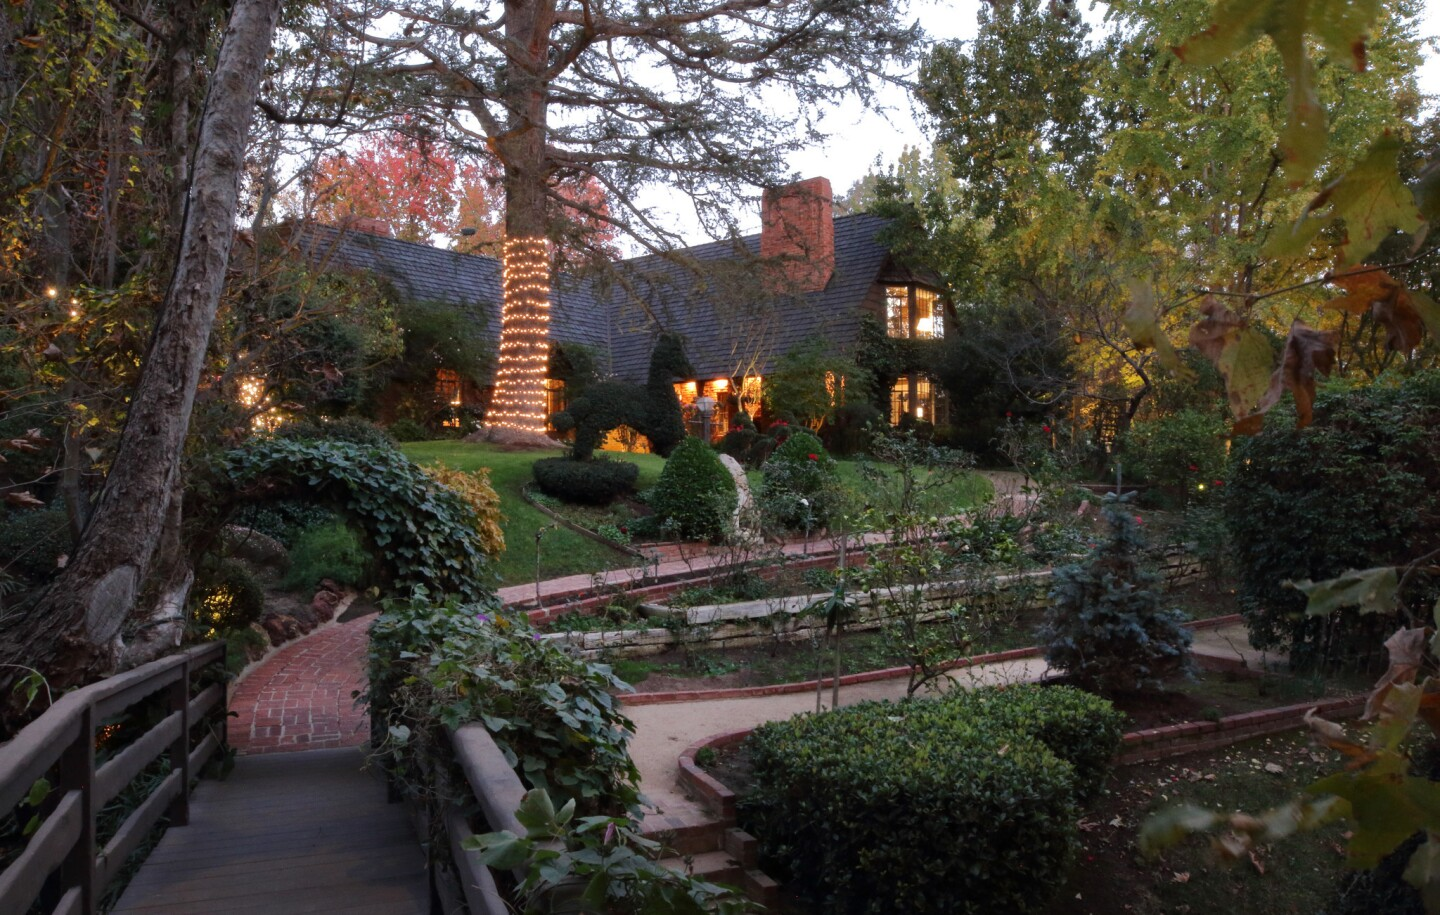 Christmases in this 1930s storybook-style home in Brentwood are a deeply ingrained tradition. Jan Stanton Holz and her husband, Richard, live here now, but the traditions began when her parents were in residence.